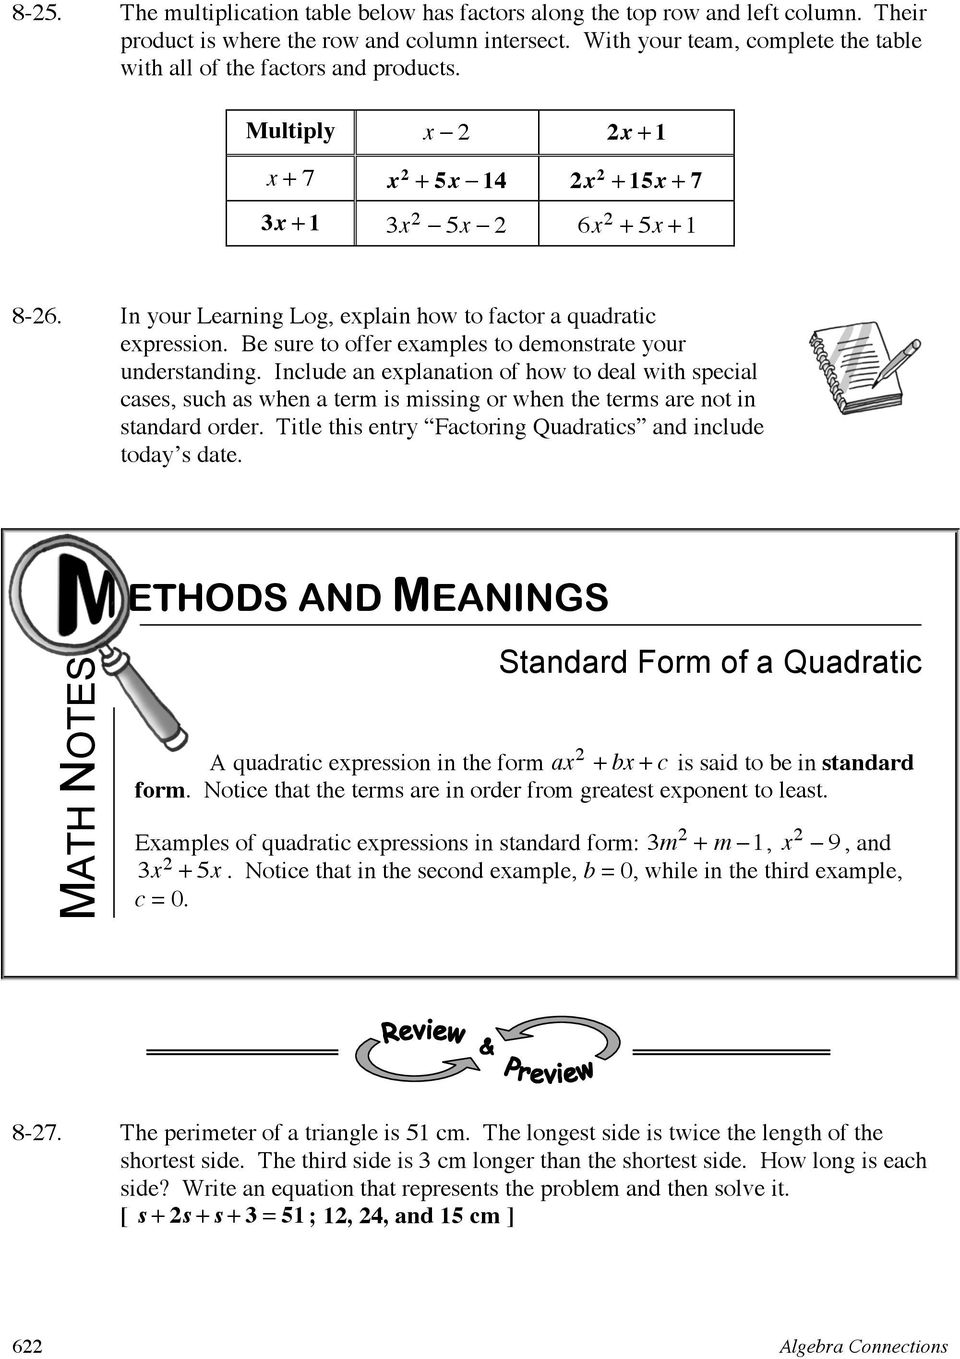 In your Learning Log, explain how to factor a quadratic expression. Be sure to offer examples to demonstrate your understanding.